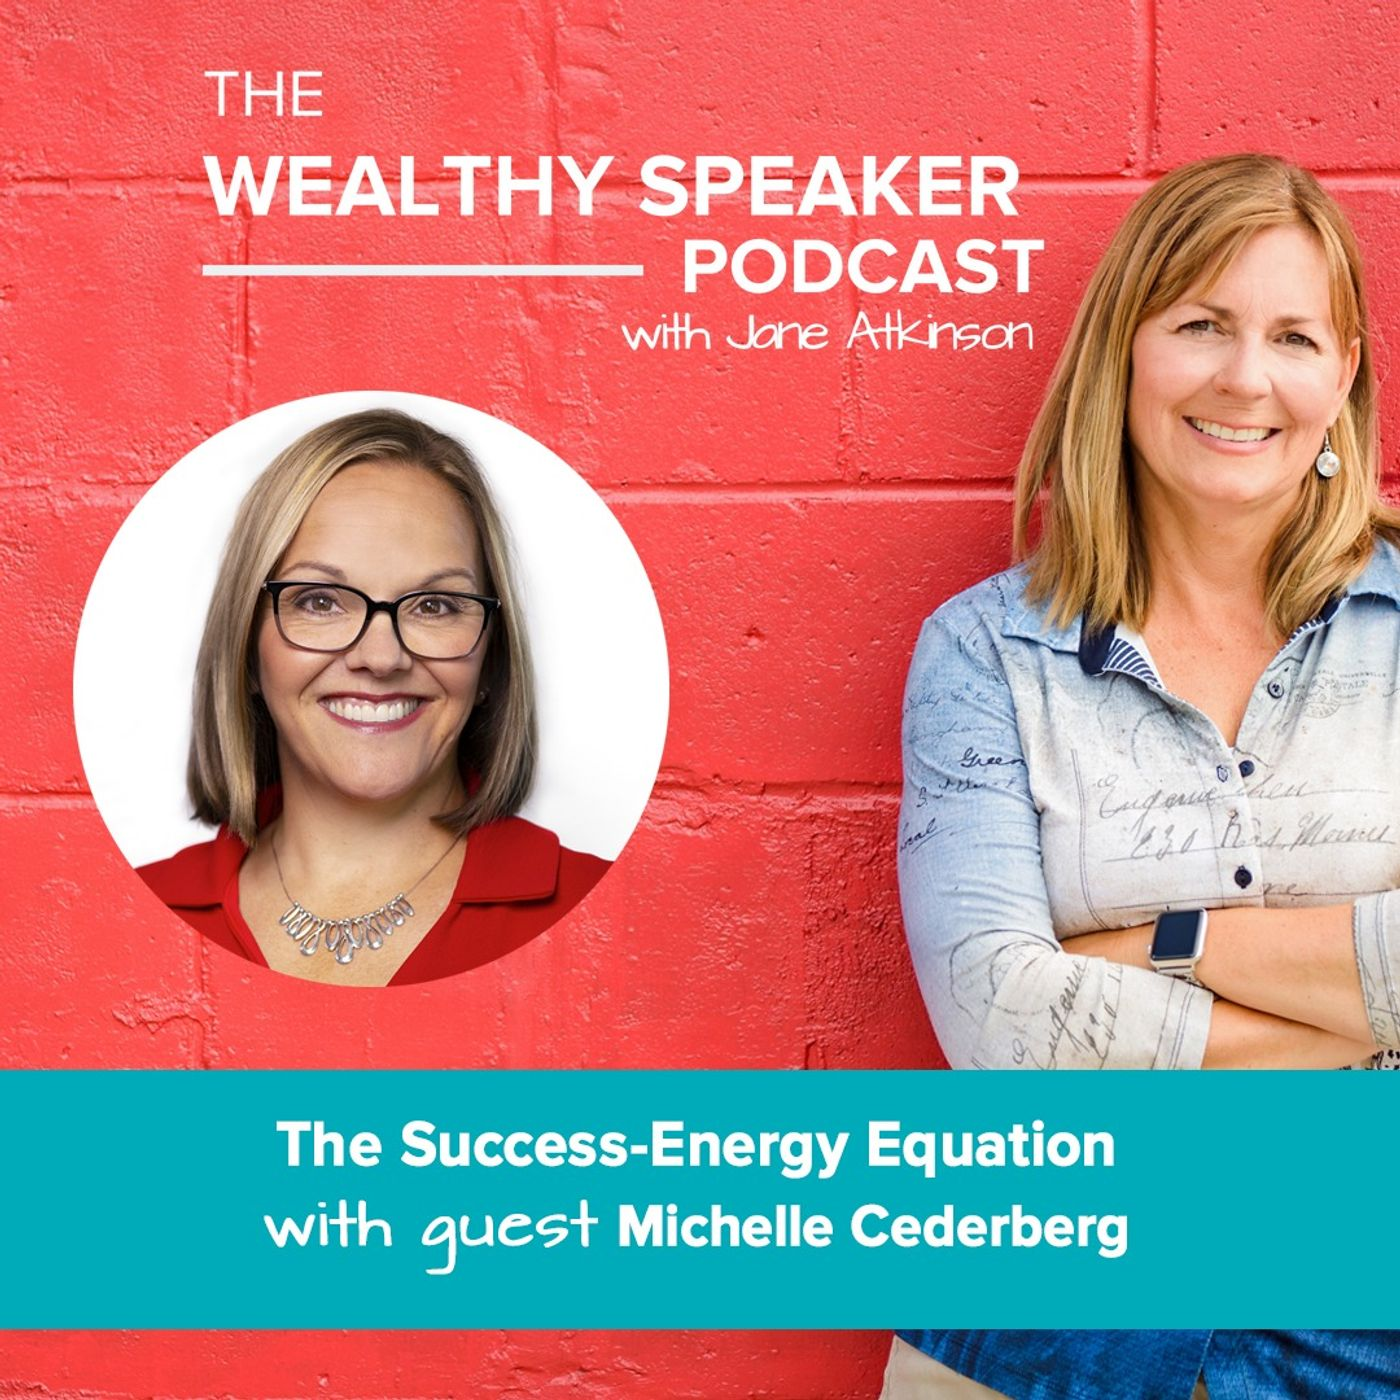 The Wealthy Speaker Podcast with Jane Atkinson and Michelle Cederberg discuss mindset